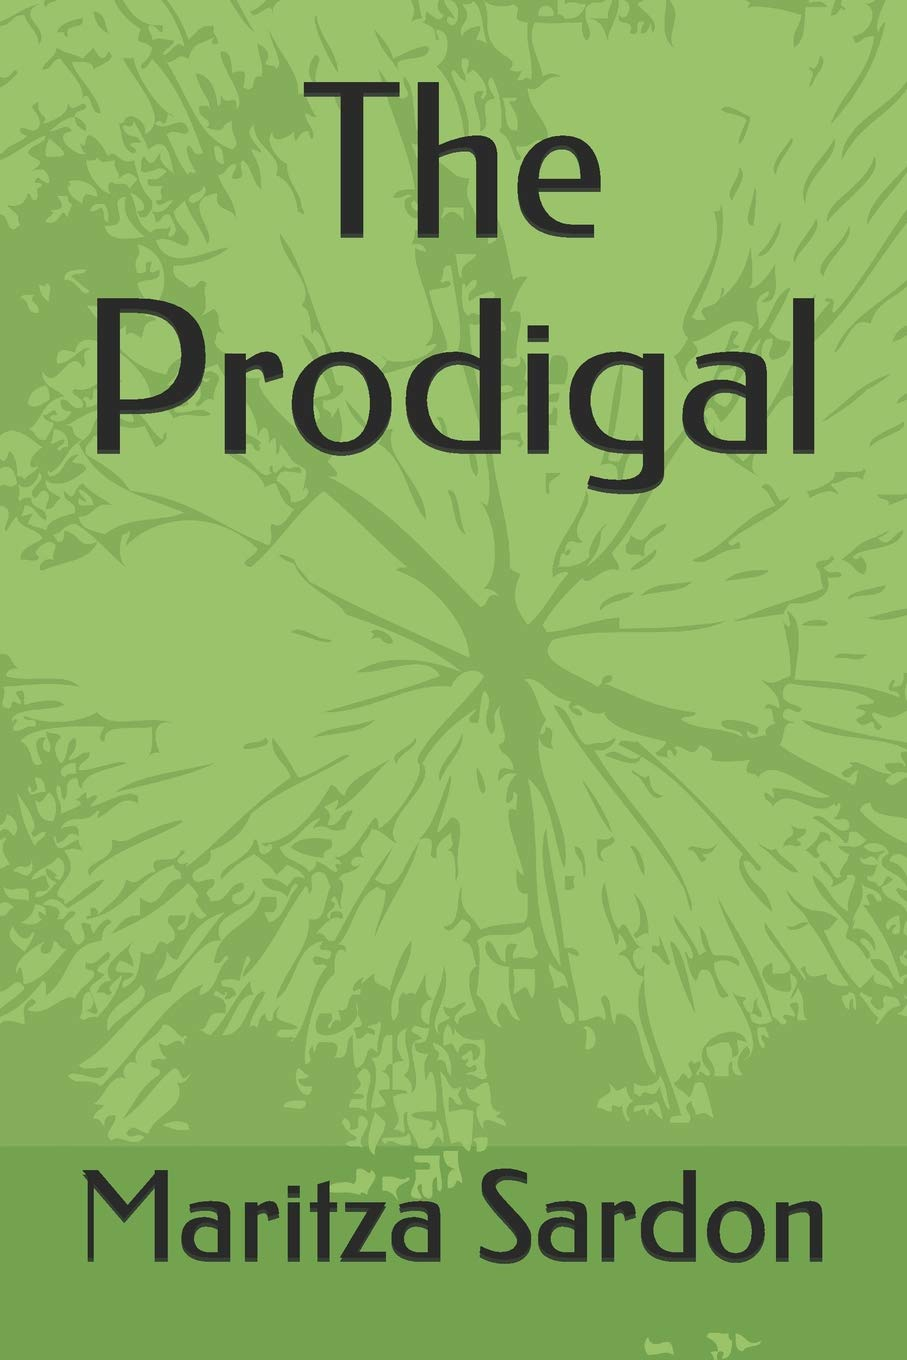 Amazon.com: The Prodigal (9781099516641): Maritza Sardon: Books